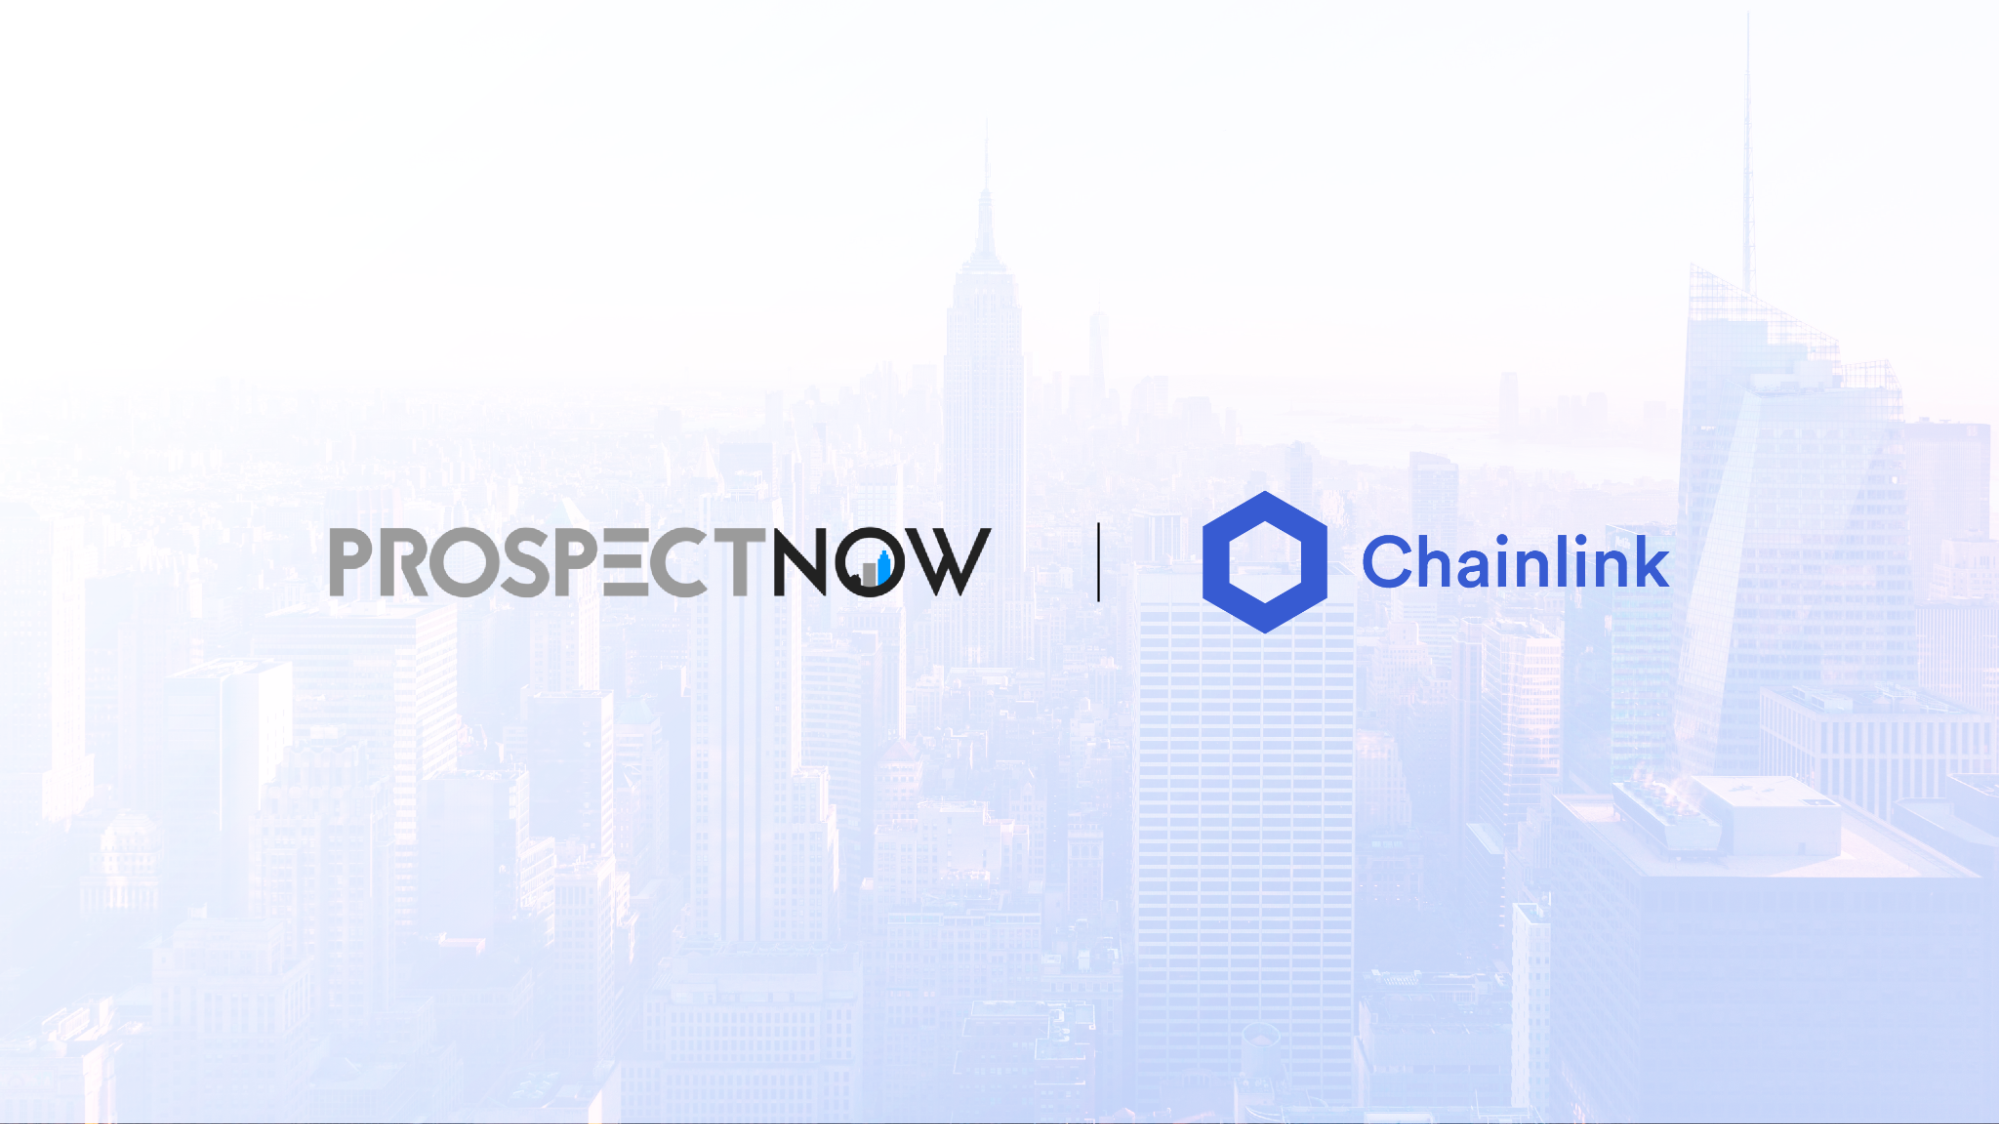 ProspectNow and Chainlink Logos